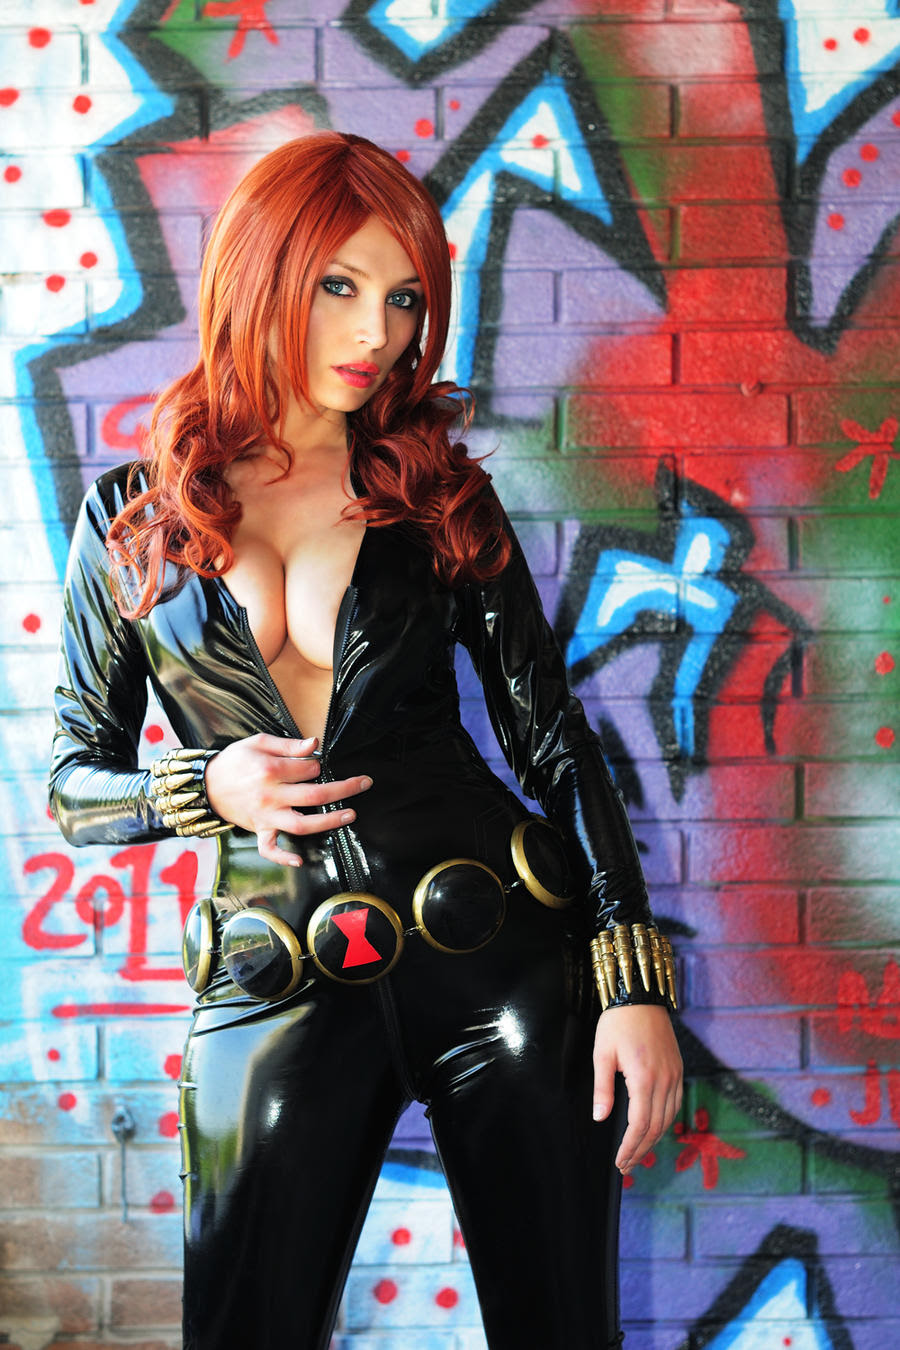 http://fc00.deviantart.net/fs70/i/2012/165/8/6/black_widow__dangerous_spy_by_giorgiacosplay-d53g6lb.jpg